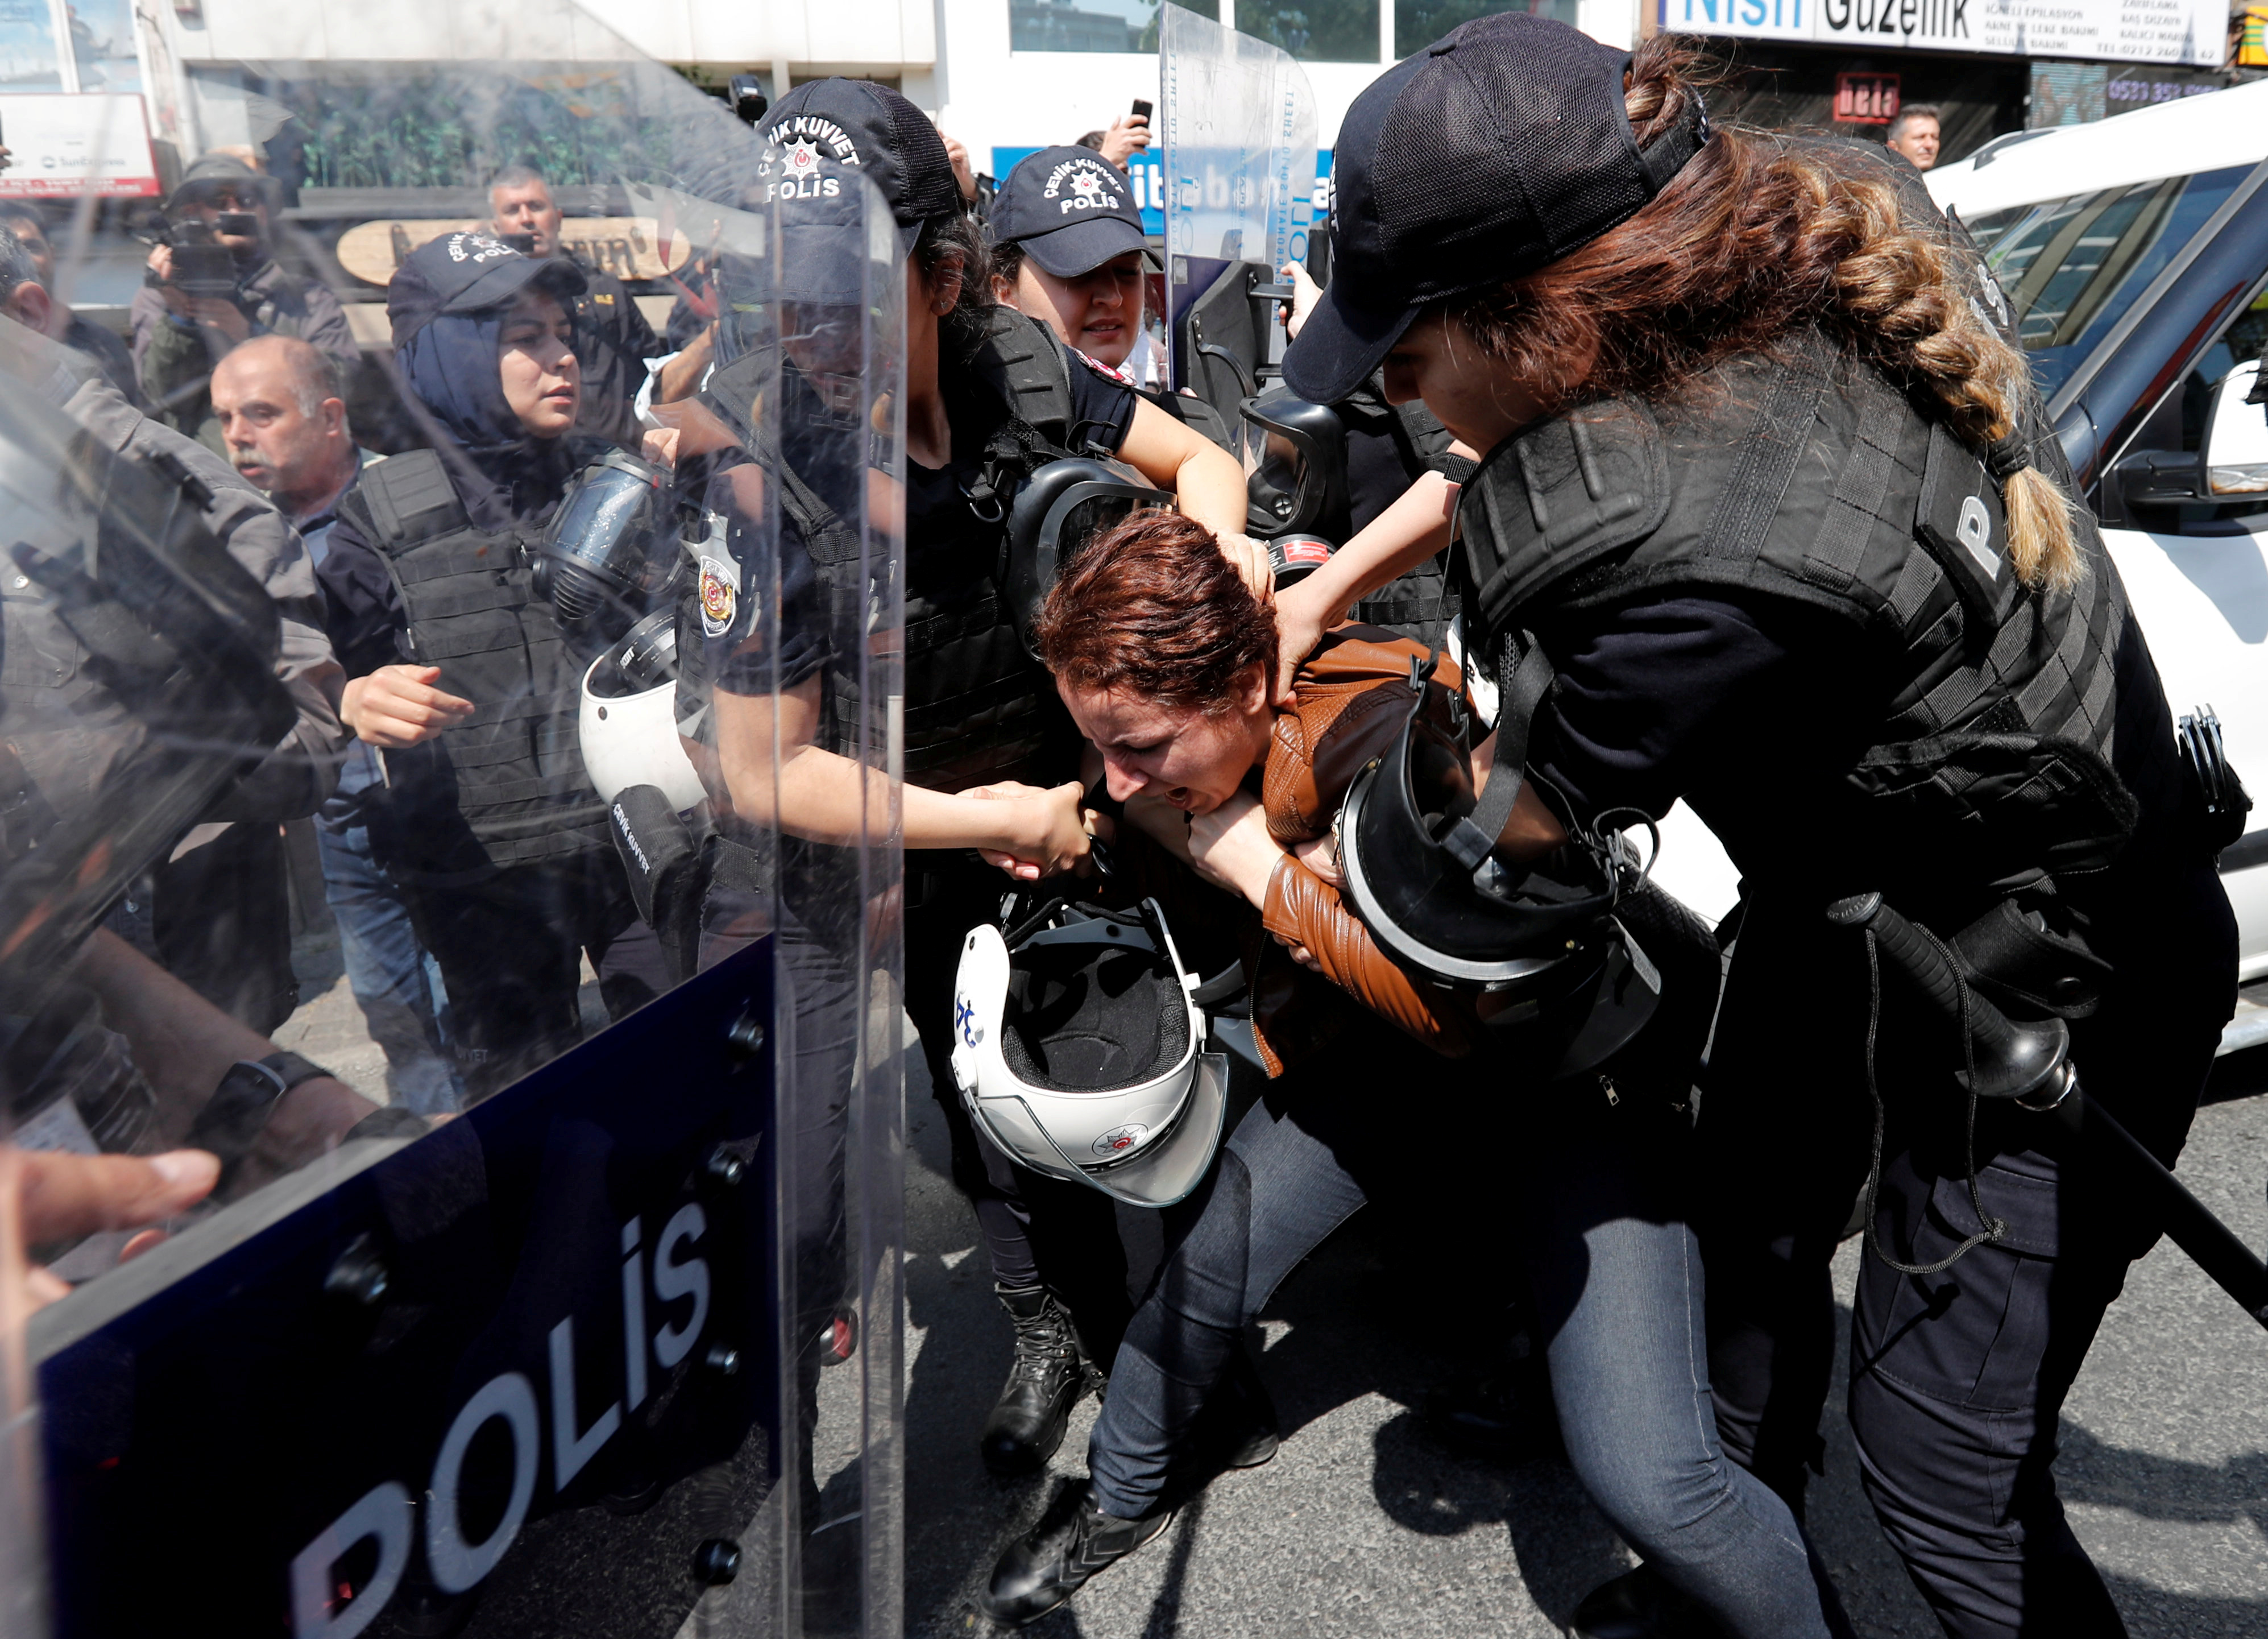 Turkish riot police scuffle with a group of protesters as they attempted to defy a ban and march on Taksim Square to celebrate May Day in Istanbul, Turkey May 1, 2018.